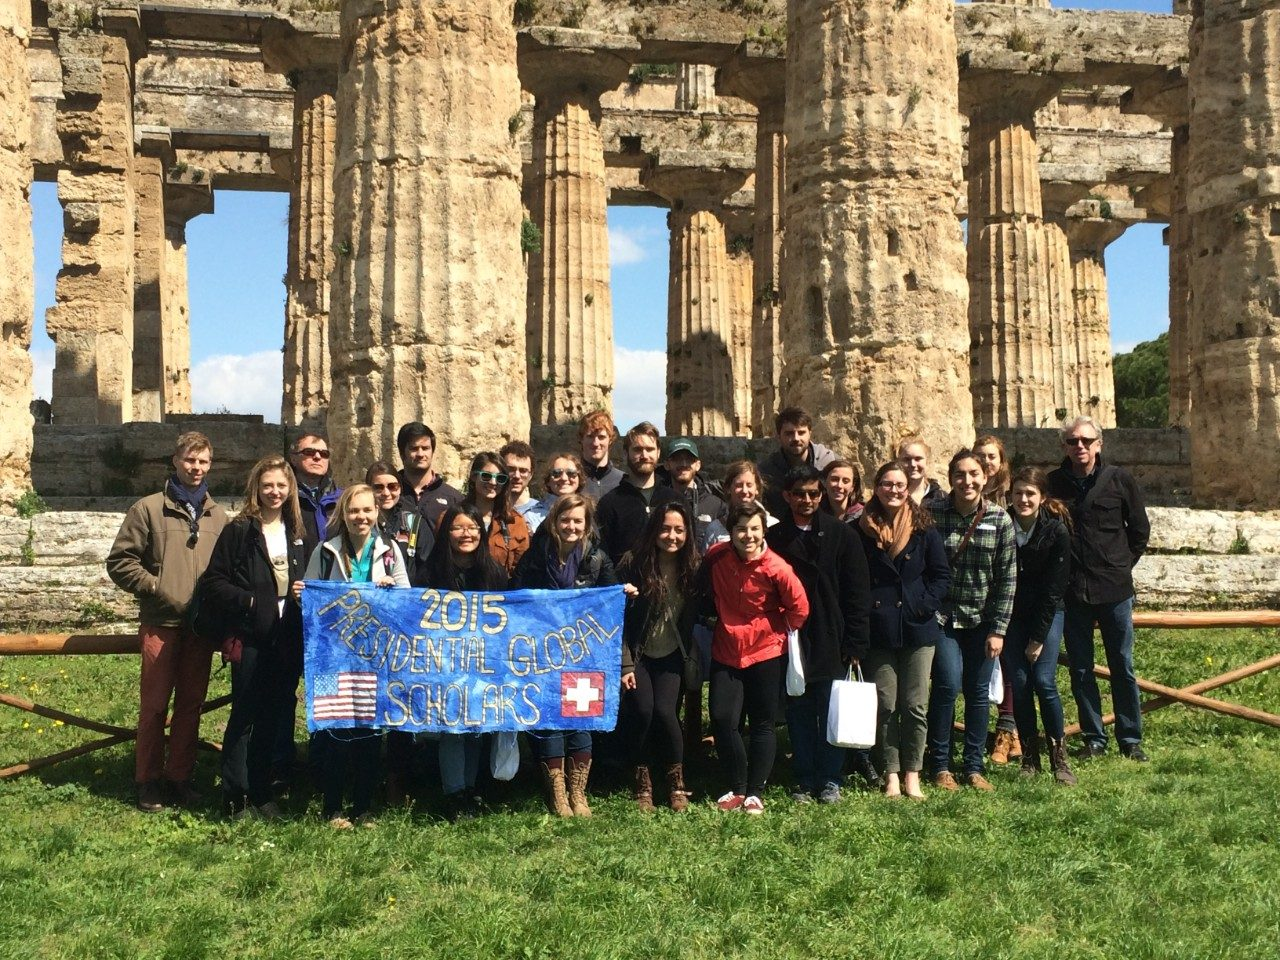 The group of University Honors students and faculty were based in Riva San Vitale, Switzerland for the spring 2015 semester, but traveled to a variety of places including Paestum in Campania, Italy.